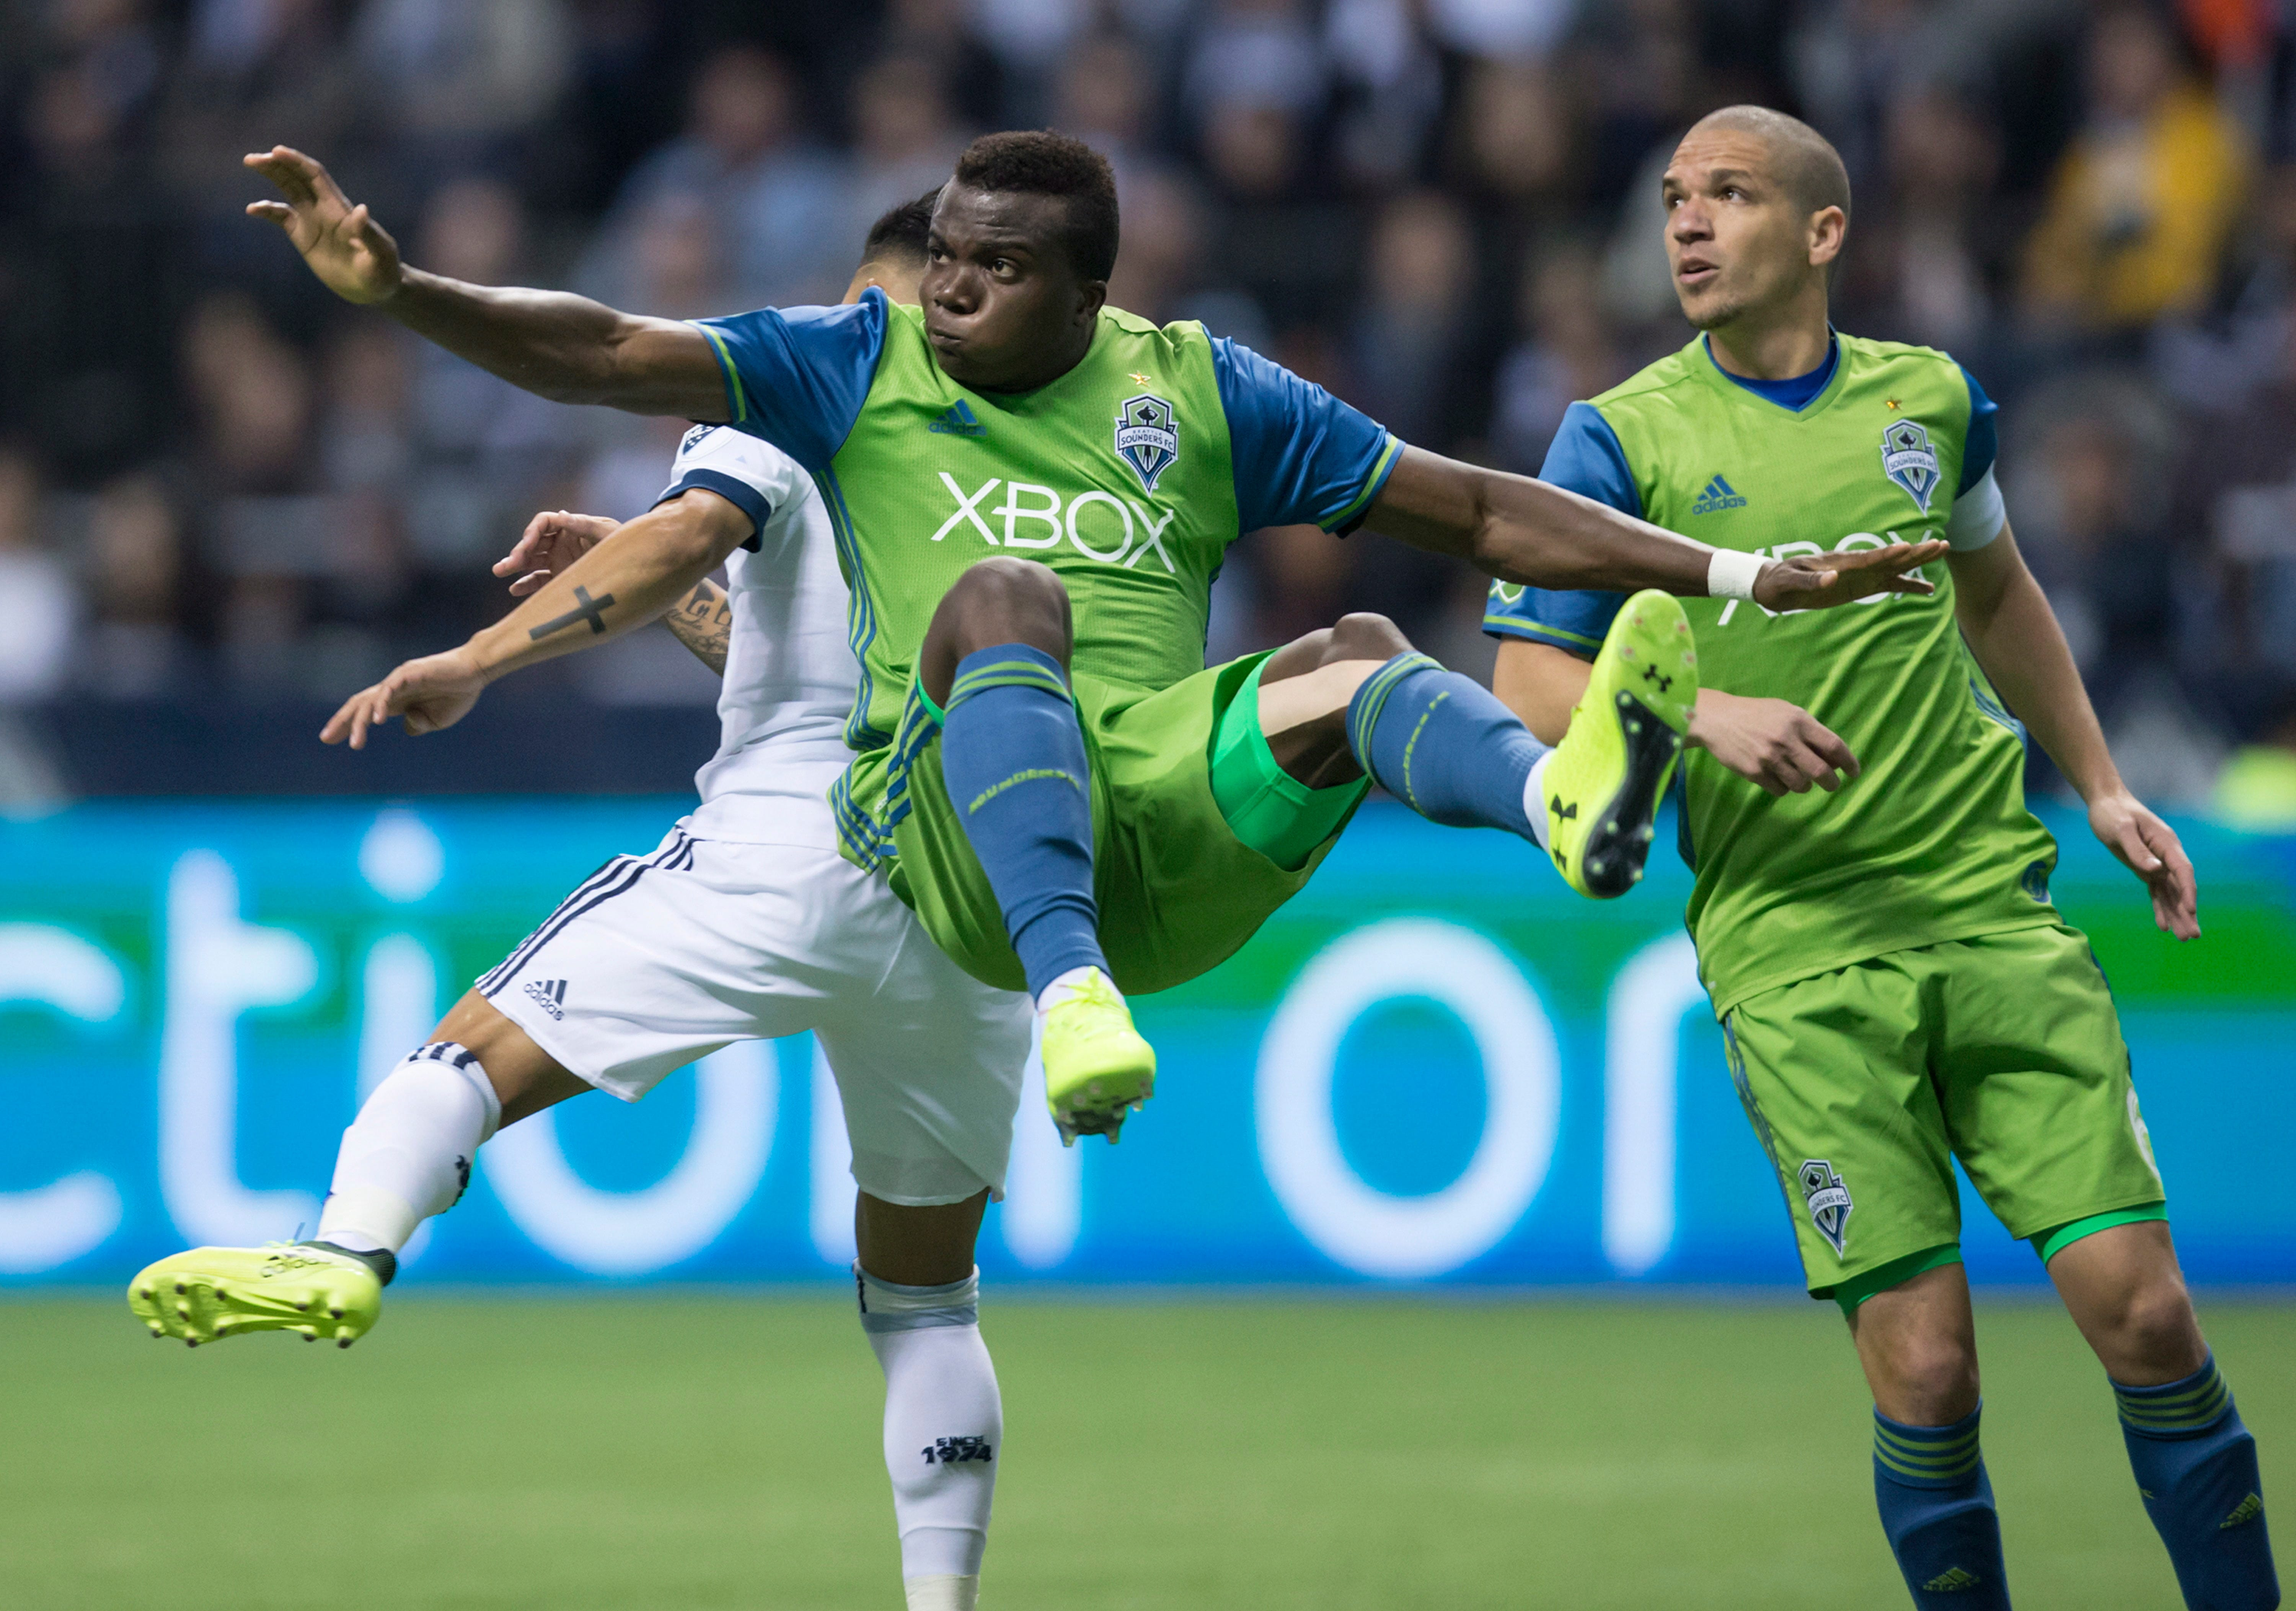 Whitecaps, Sounders open West semis with 0-0 draw